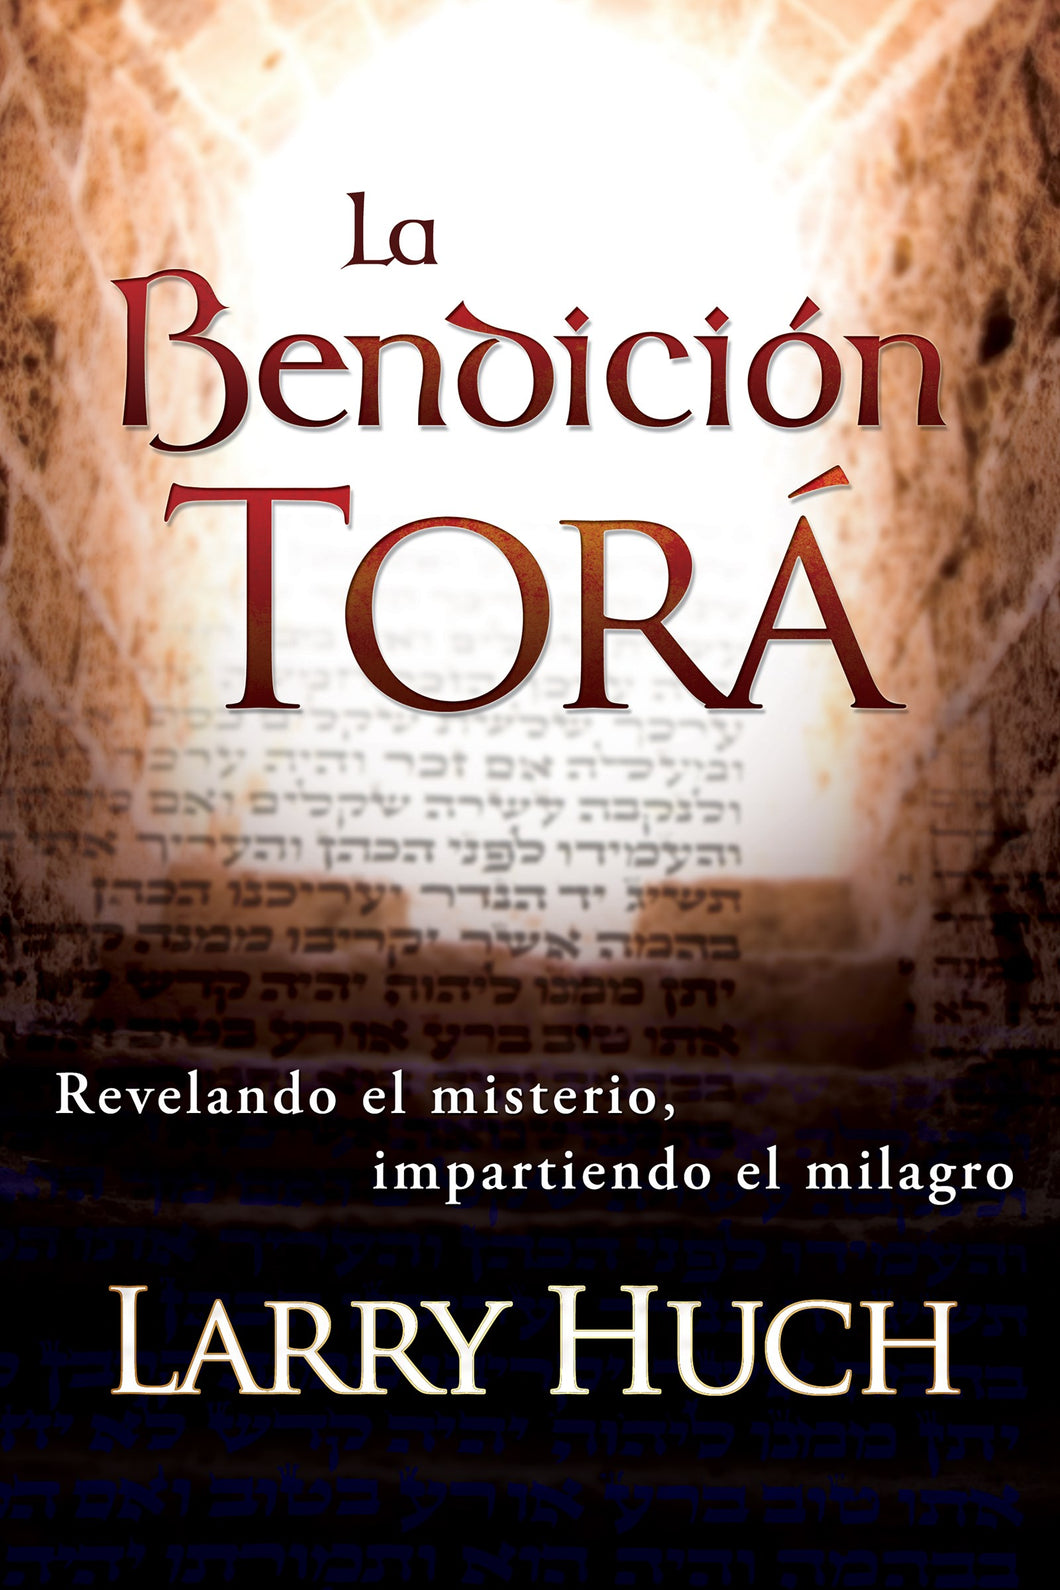 Spanish- Torah Blessing (Our Jewish Heritage)